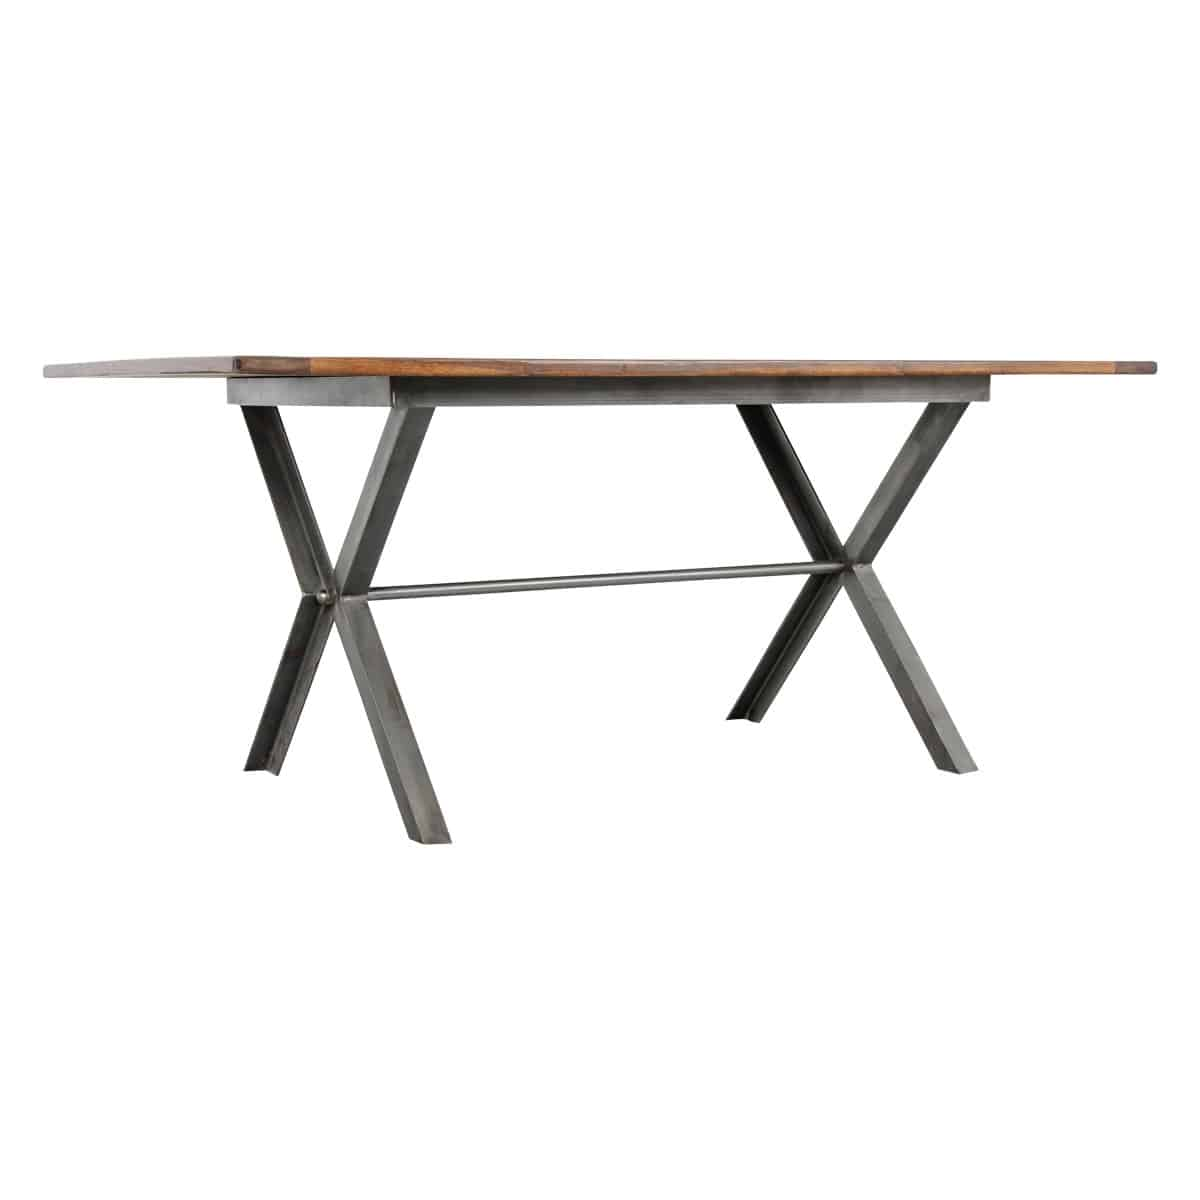 Walnut Iron X Base Dining Table, X Base Dining Room Table